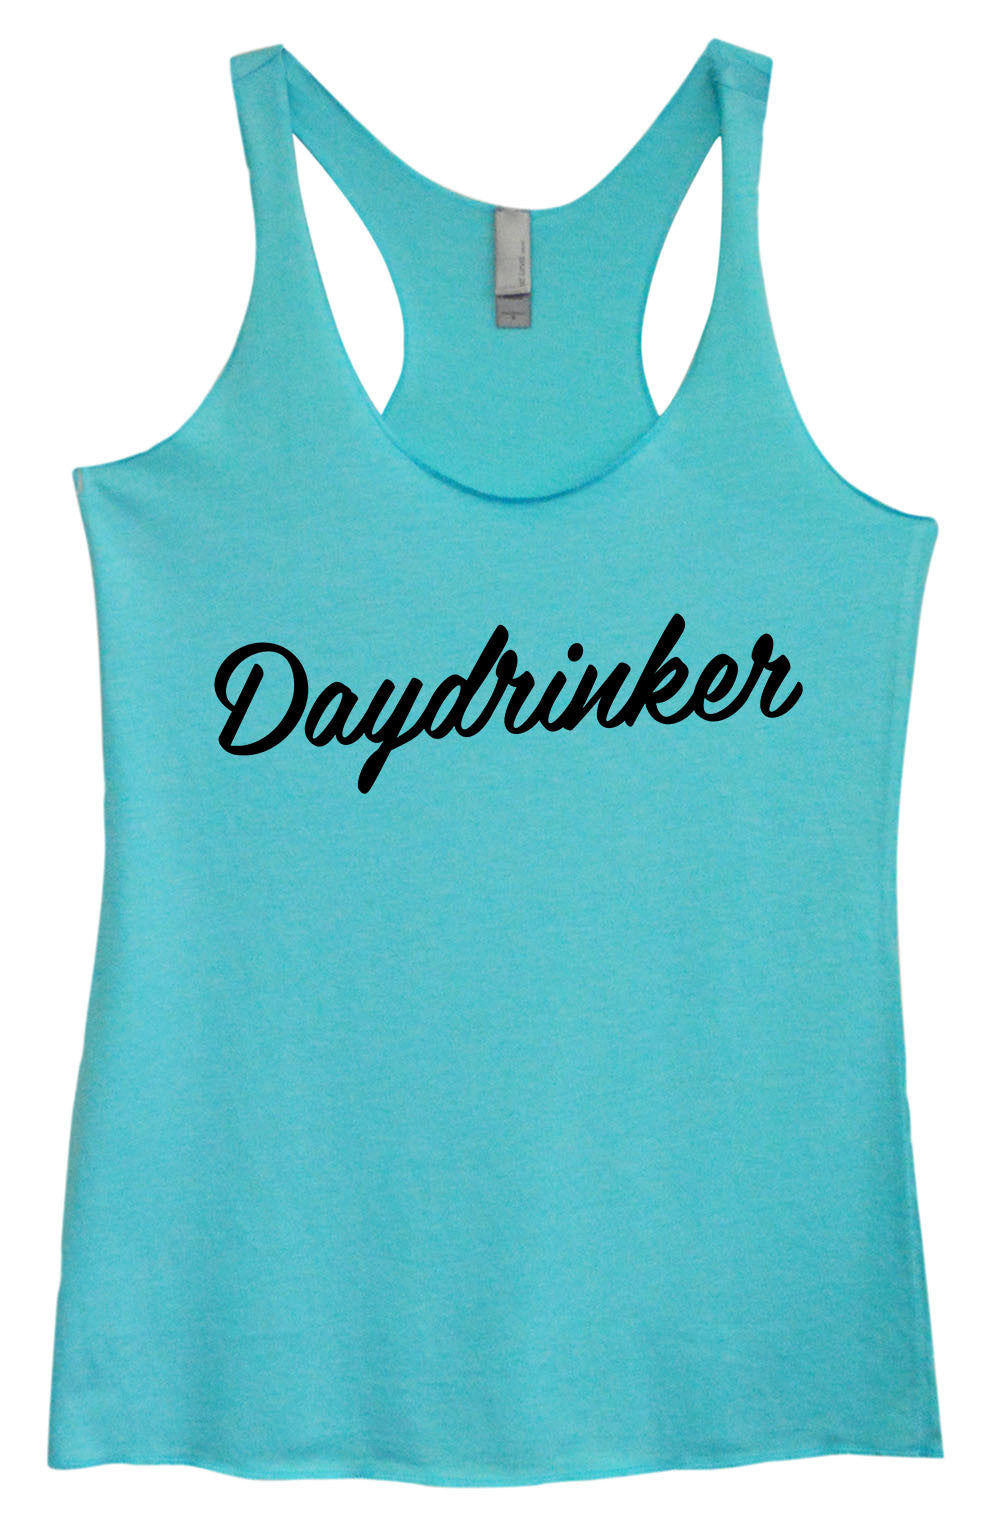 Womens Fashion Triblend Tank Top - Daydrinker - Tri-1569 - Funny Shirts Tank Tops Burnouts and Triblends  - 2